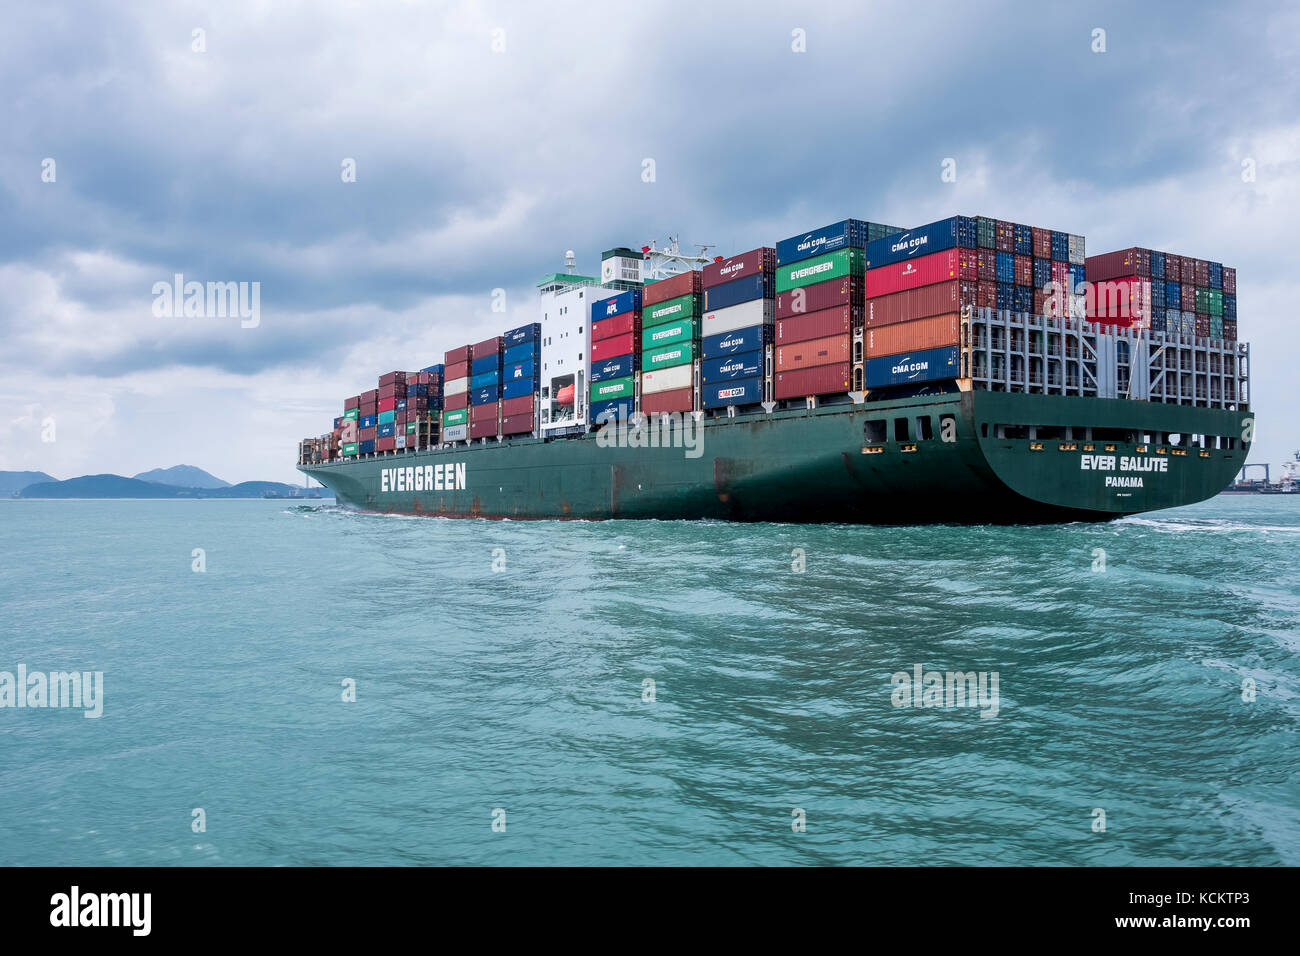 Giant Container Ship Leaves Port From Hong Kong Heading Out Into